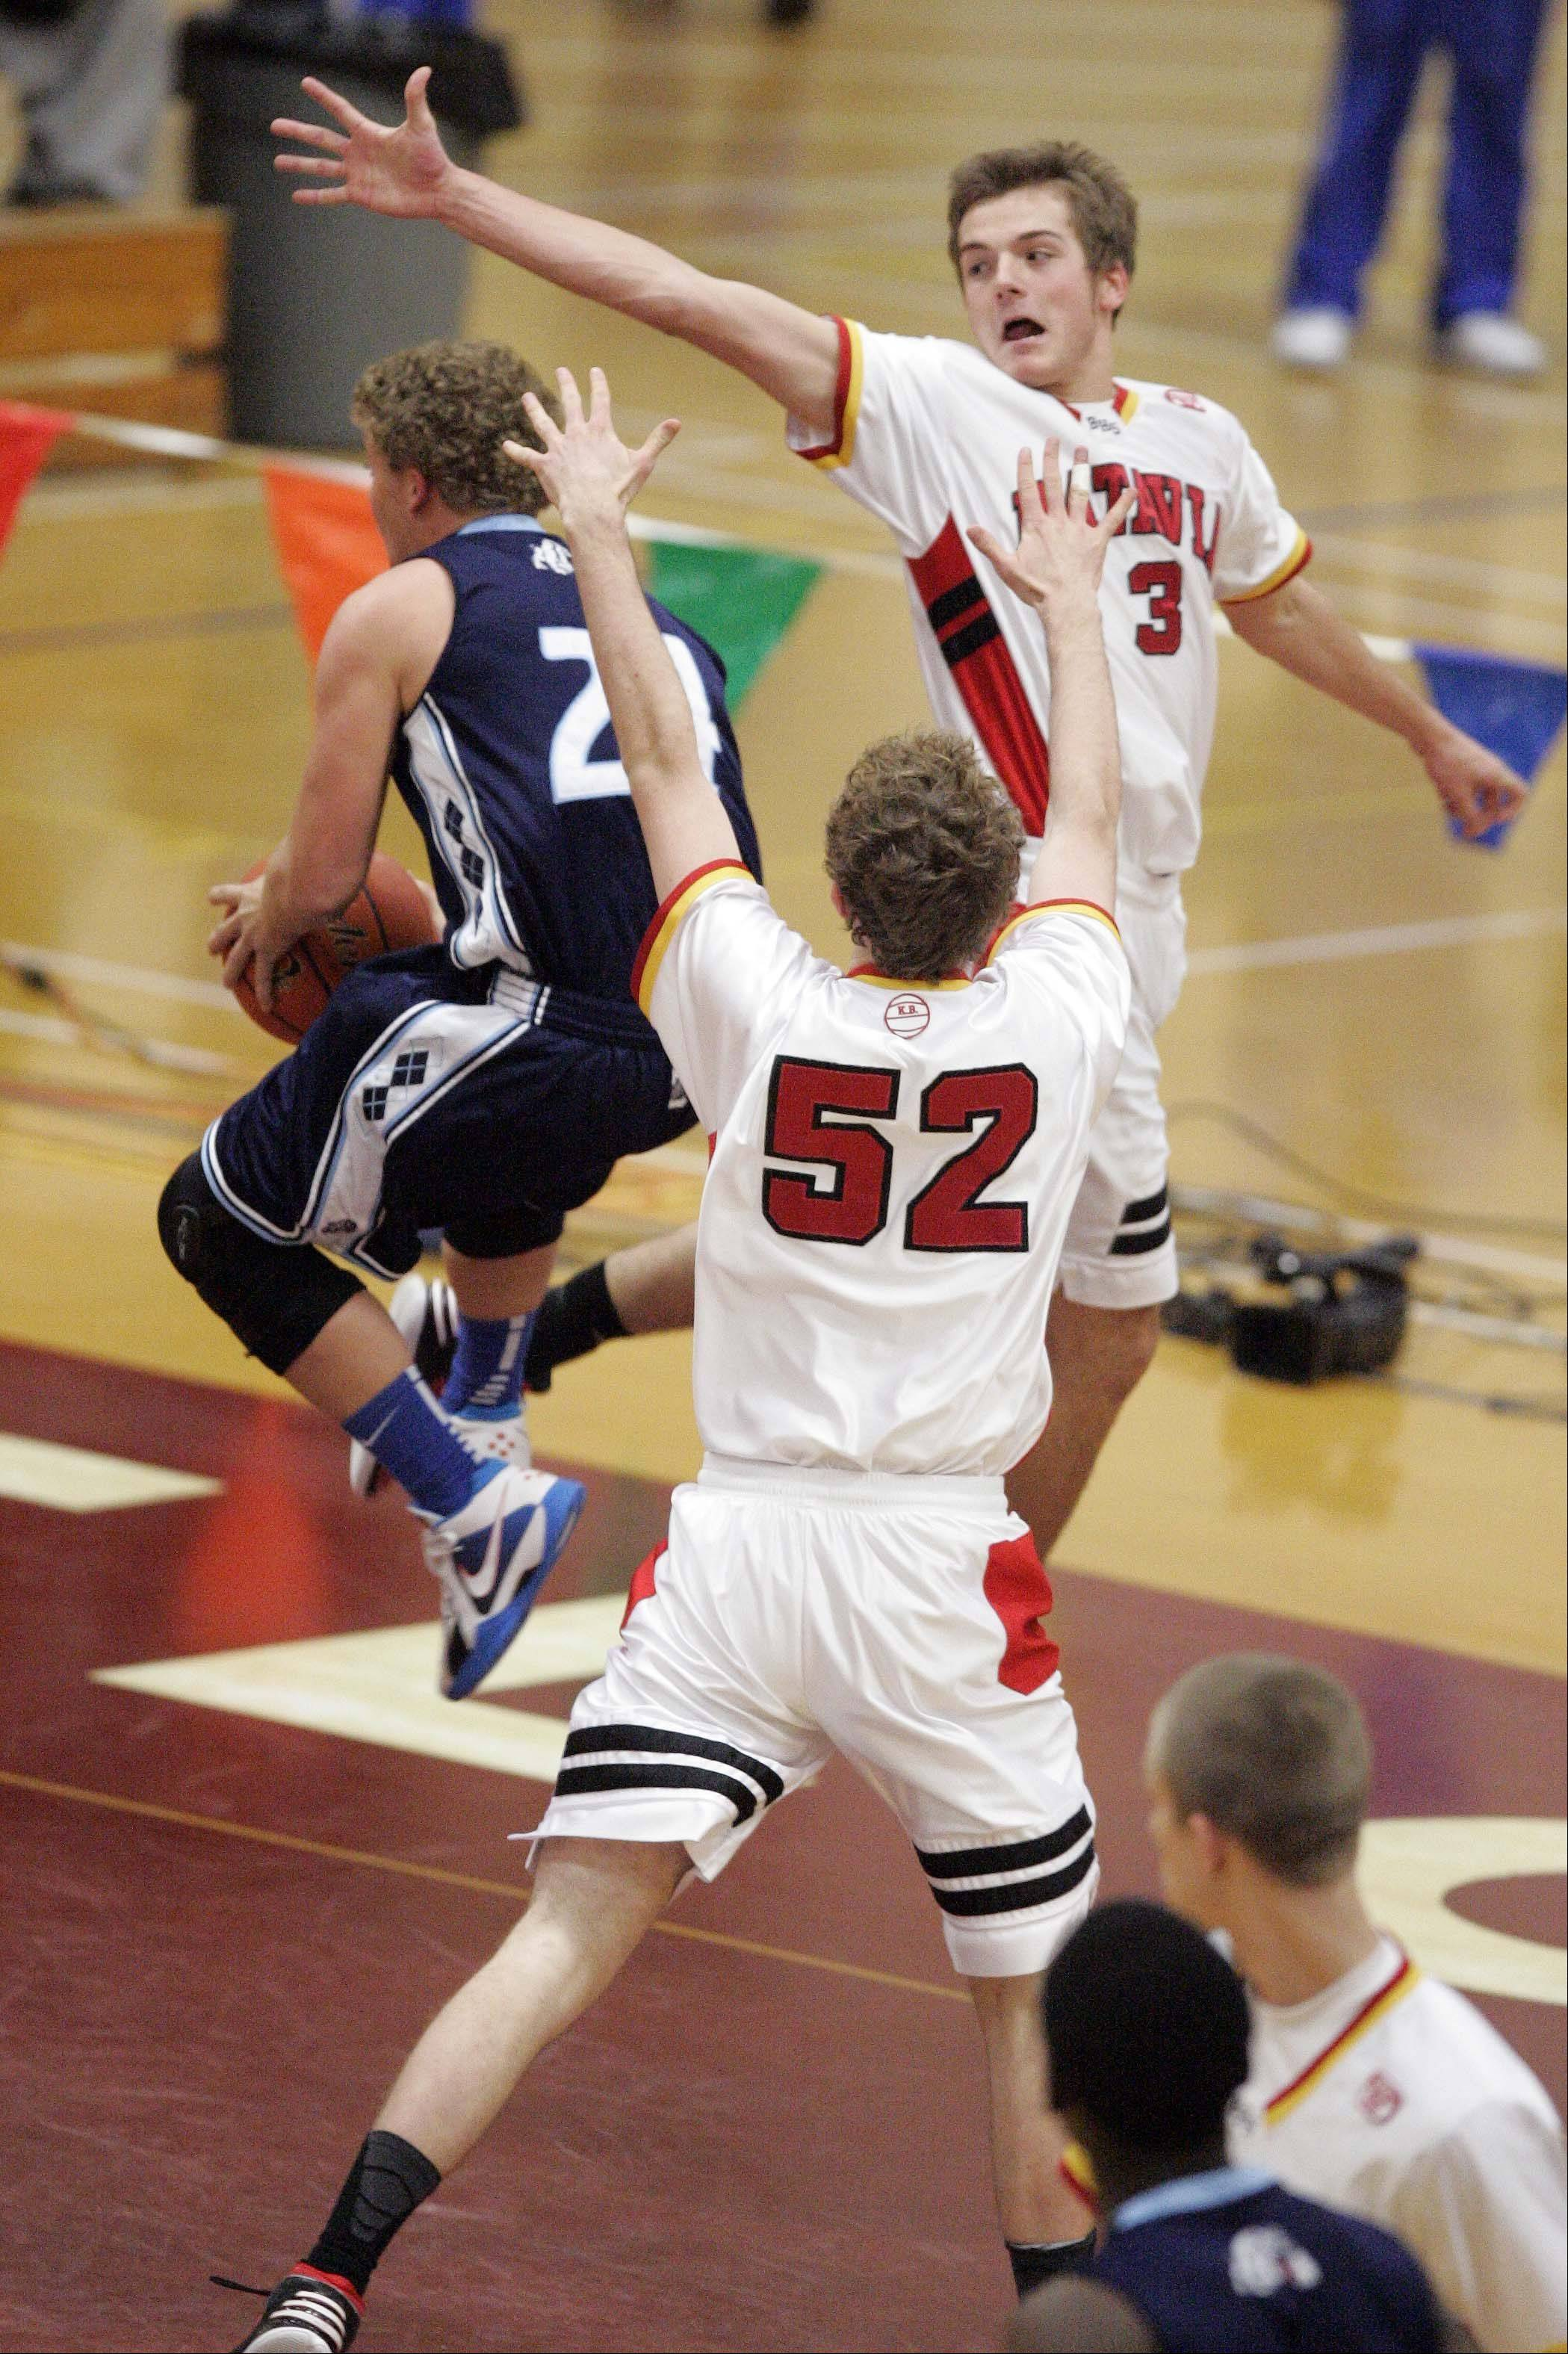 Las Vegas Centennial's Austin Turley, 24, threads his way through Batavia forward Luke Horton (52) and guard Jake Pollack (3) during the third place basketball game of the 38th Annual Elgin Boys Holiday Basketball Tournament Saturday, December 29, 2012 in Elgin.